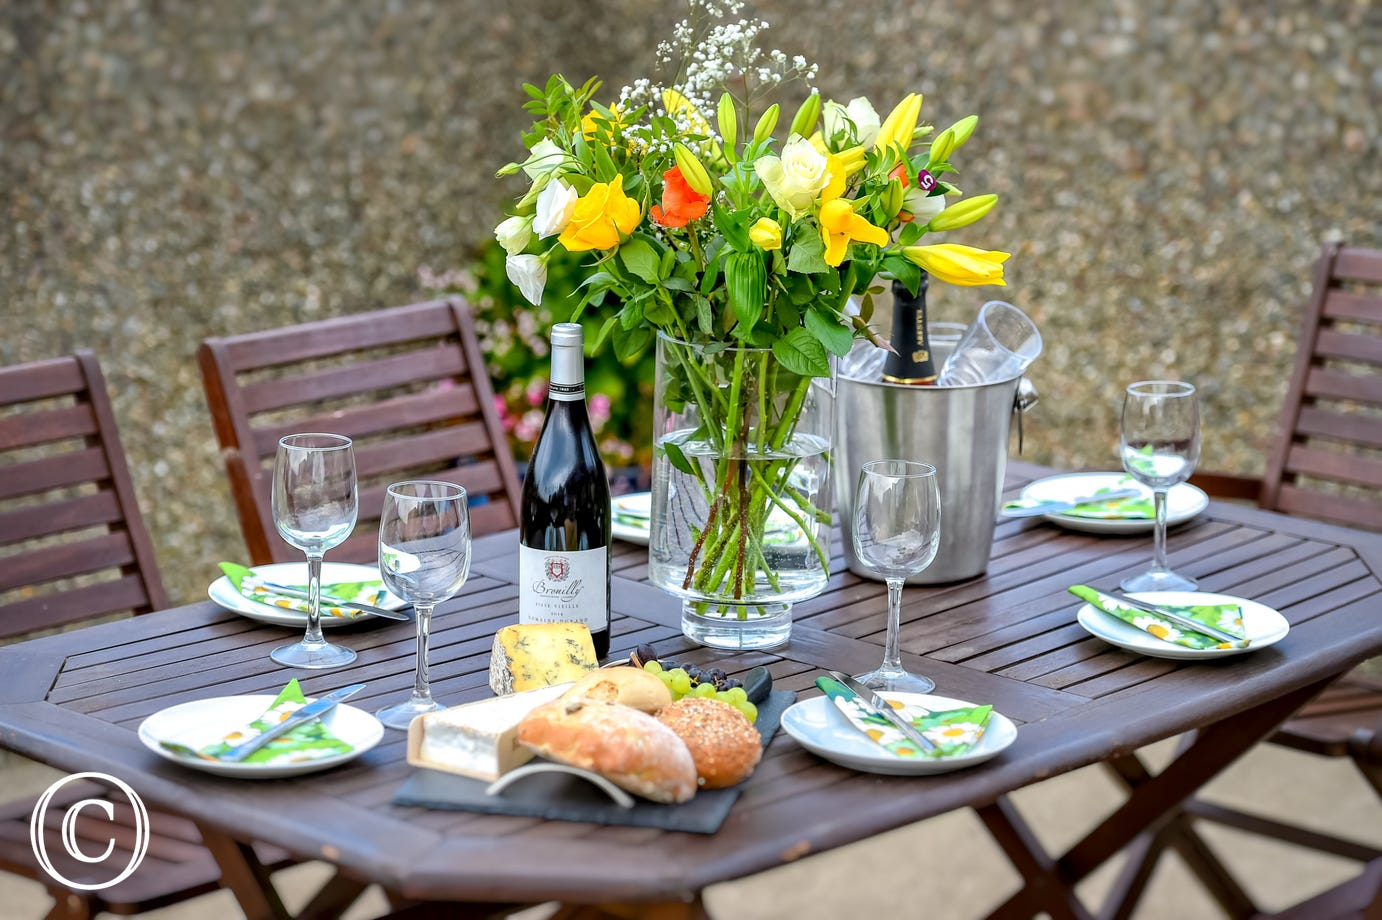 Treat yourself to alfresco dining